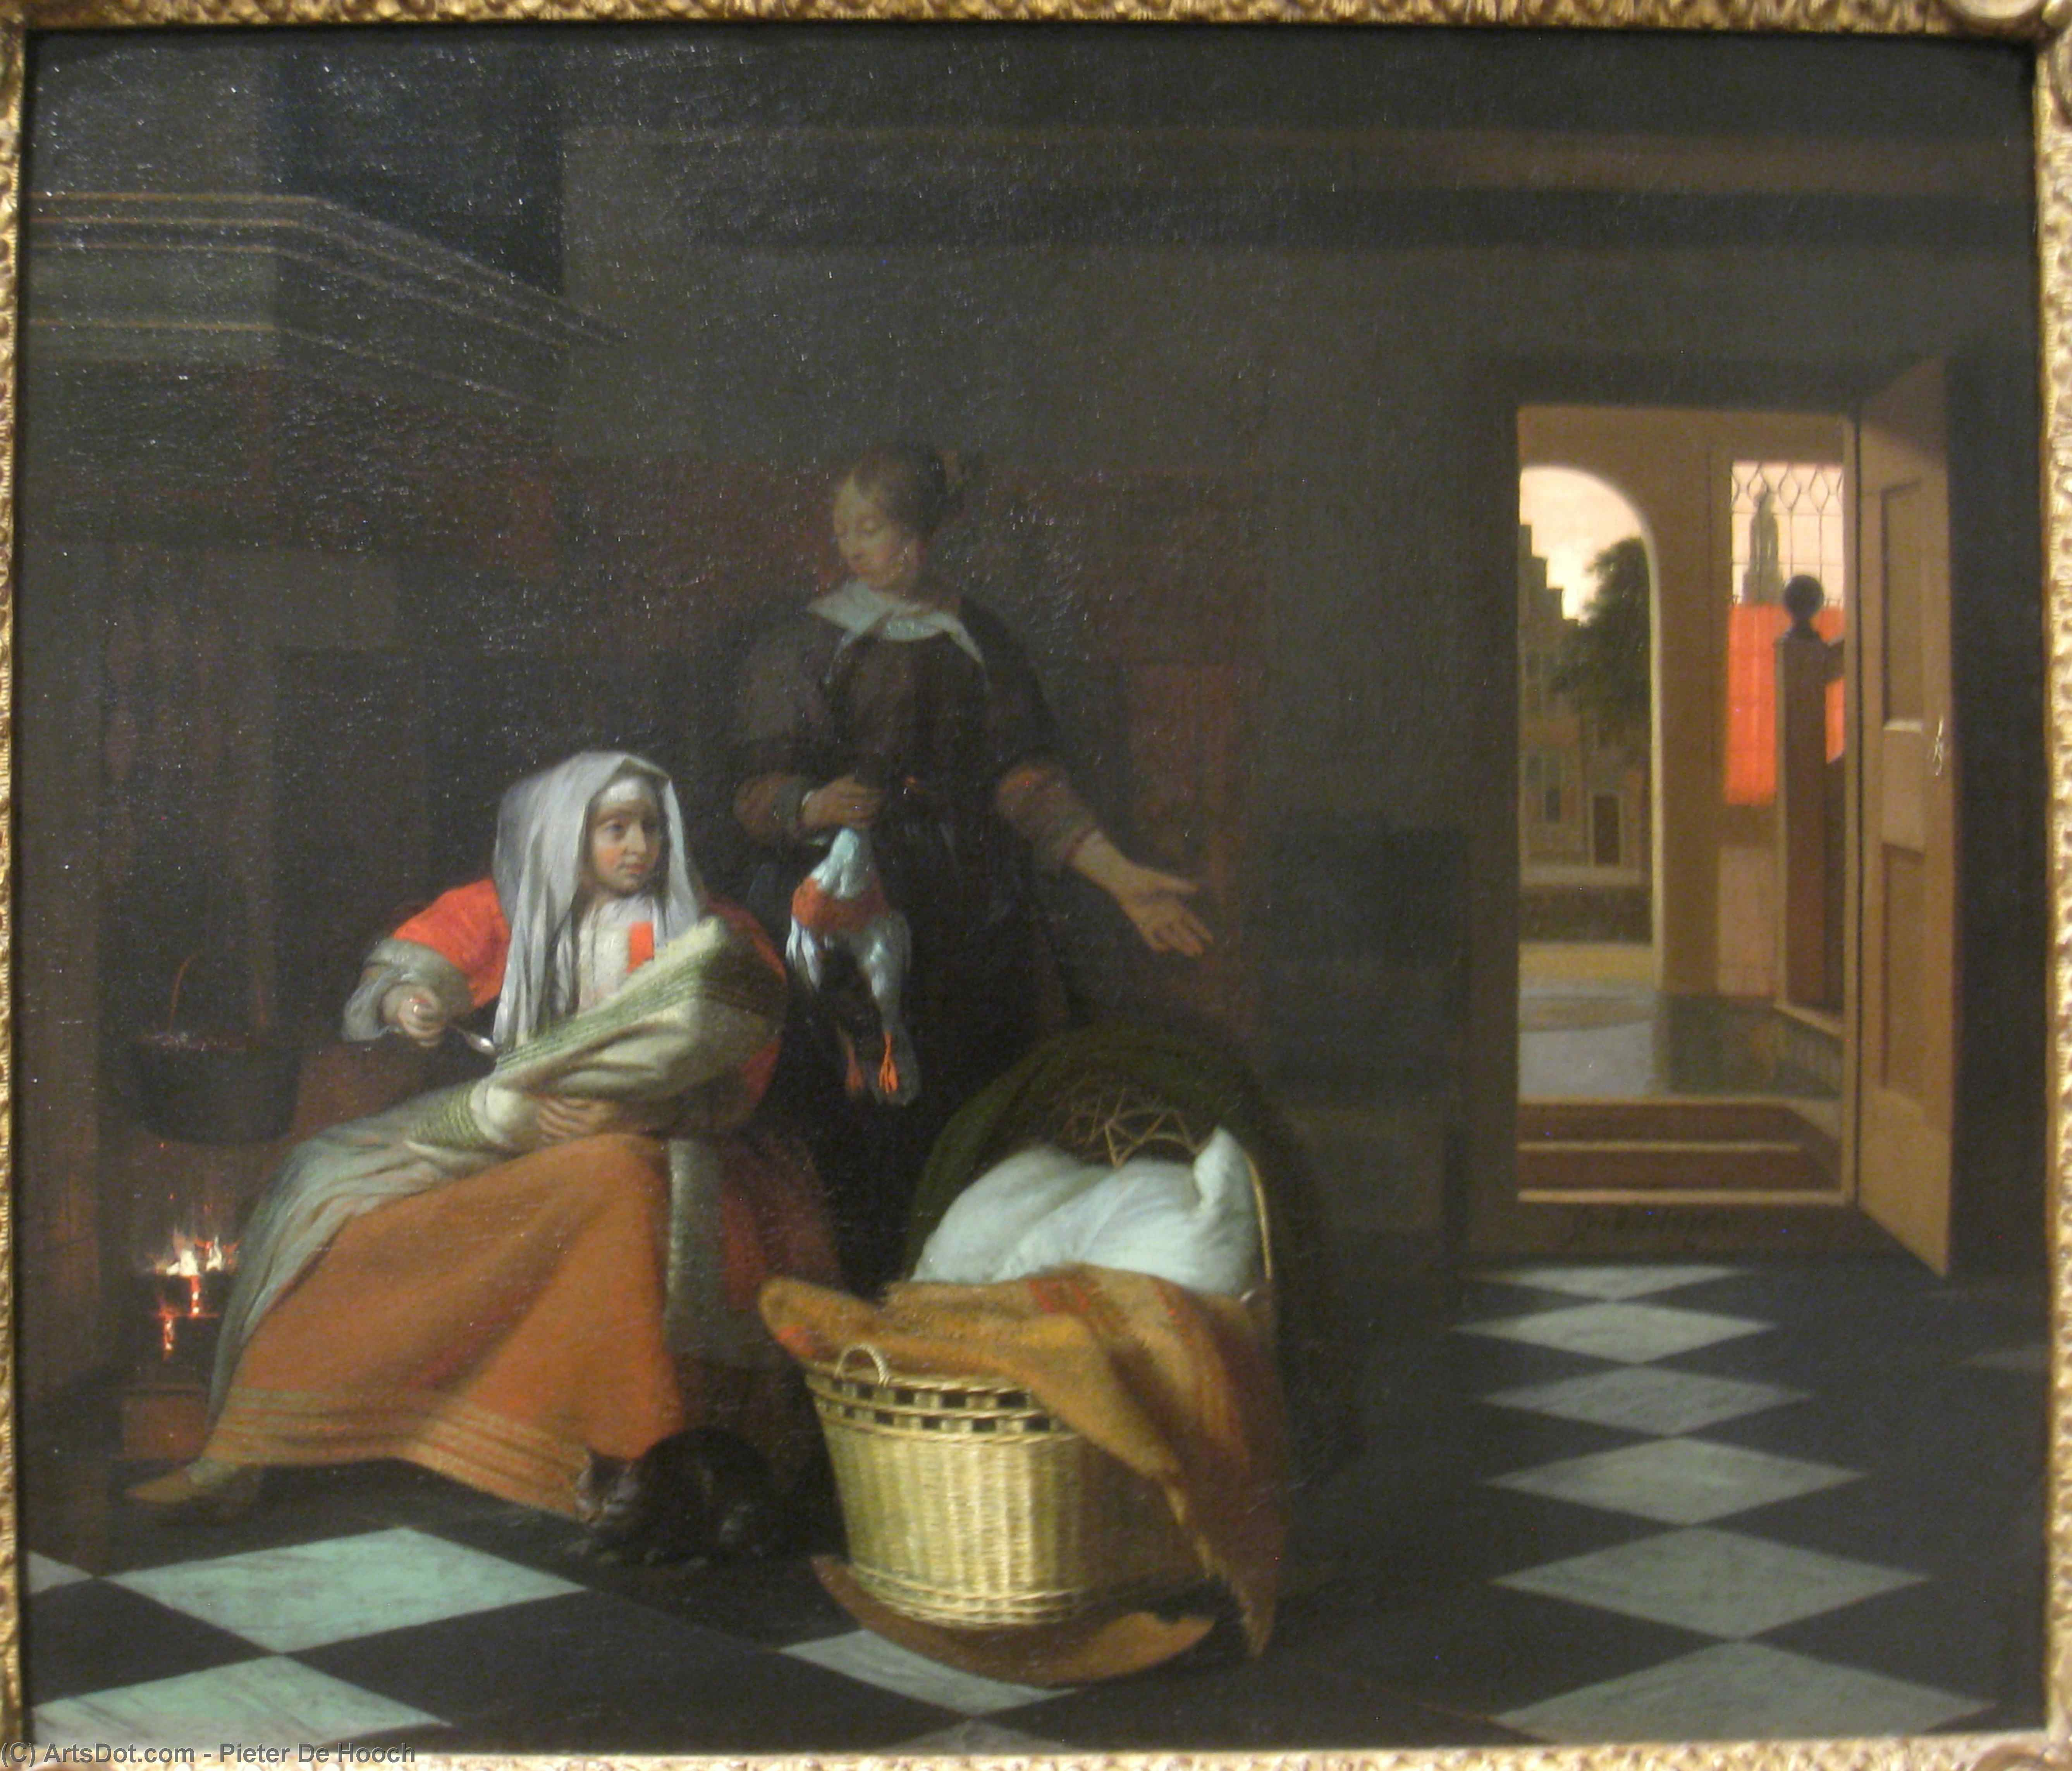 Wikioo.org - The Encyclopedia of Fine Arts - Painting, Artwork by Pieter De Hooch - Woman with a Child and a Maid in an Interior